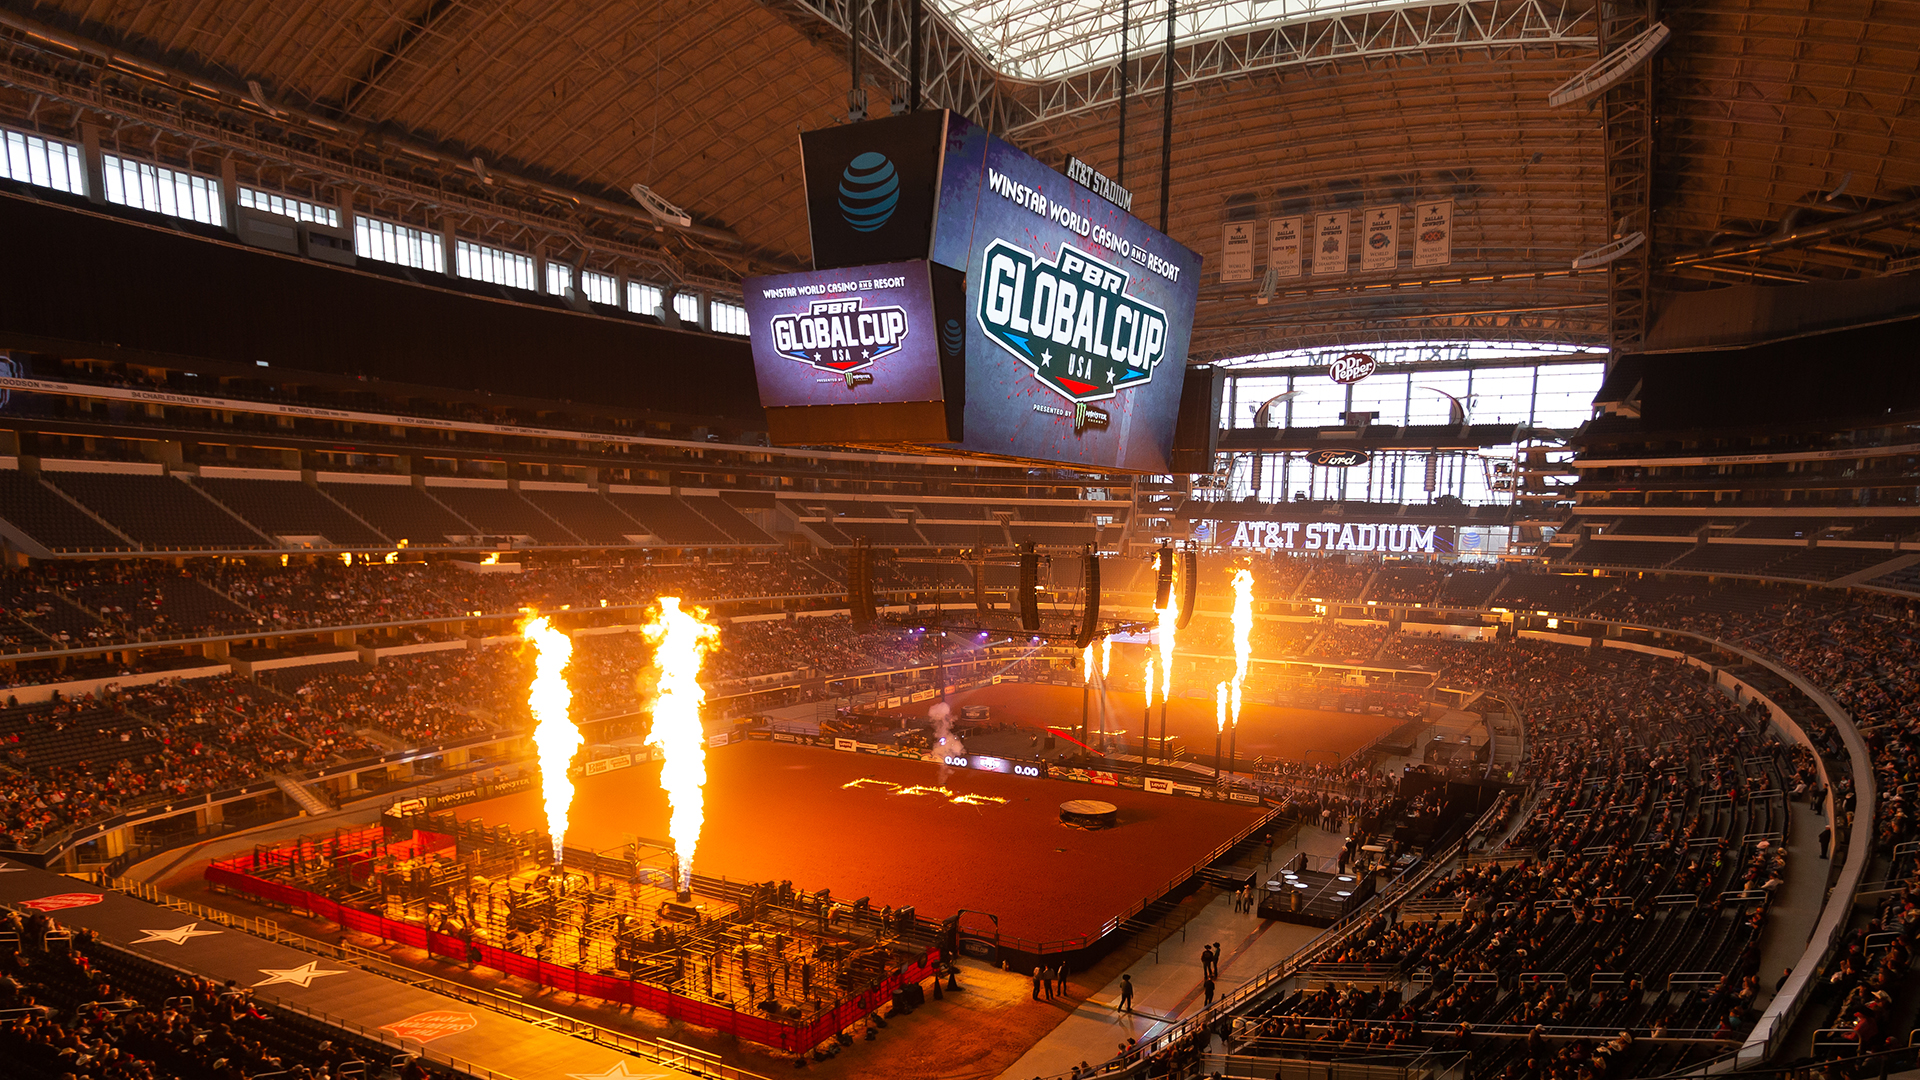 PBR Global Cup returns to AT&T Stadium on Feb. 15-16